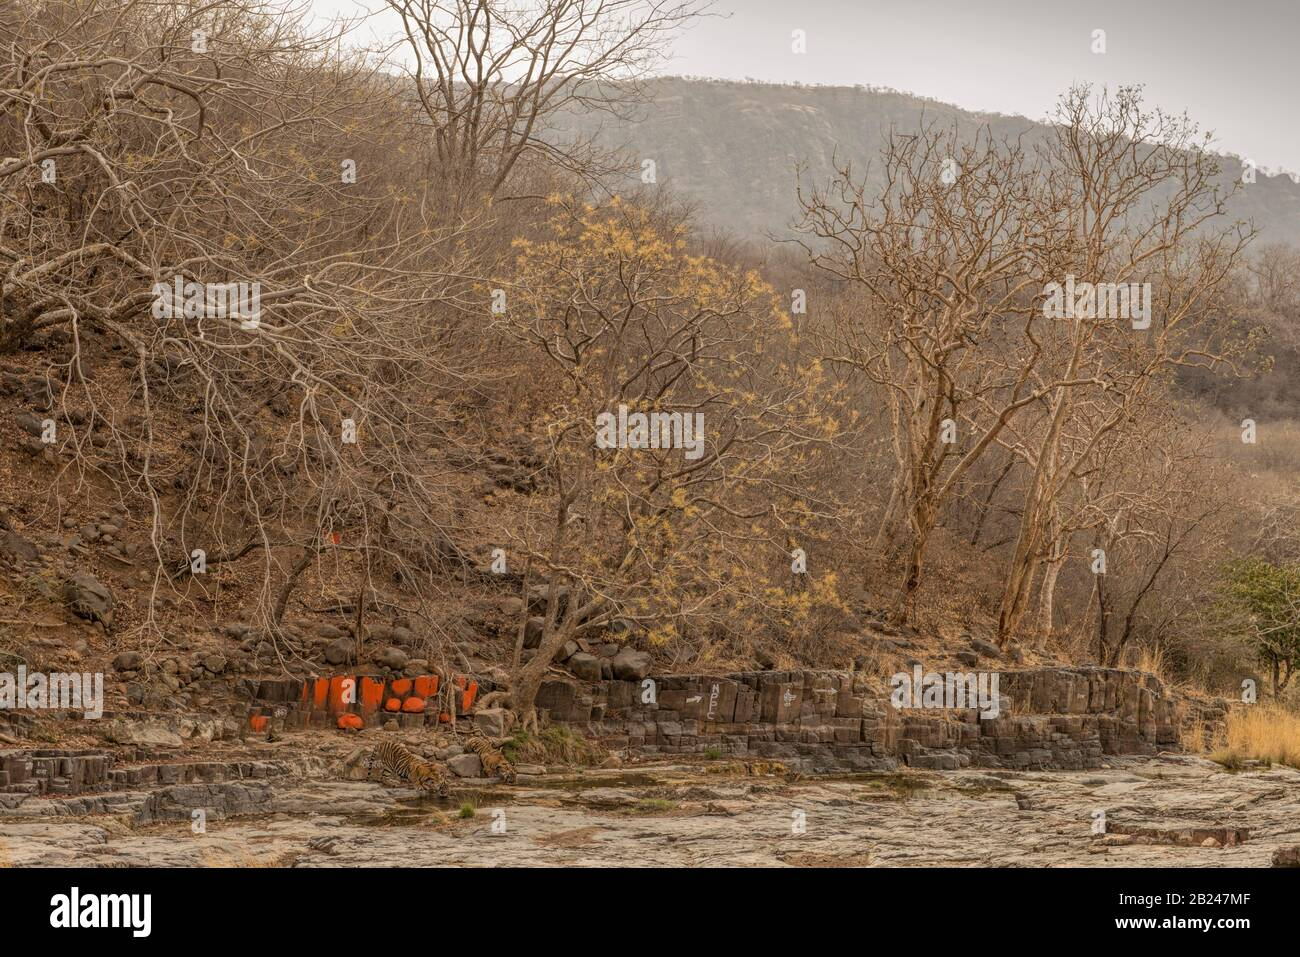 Wide angled shot of two wild tigers (Panthera tigris tigris) drinking water from a rocky puddle near a Hindu temple in the dry decidous forests Stock Photo